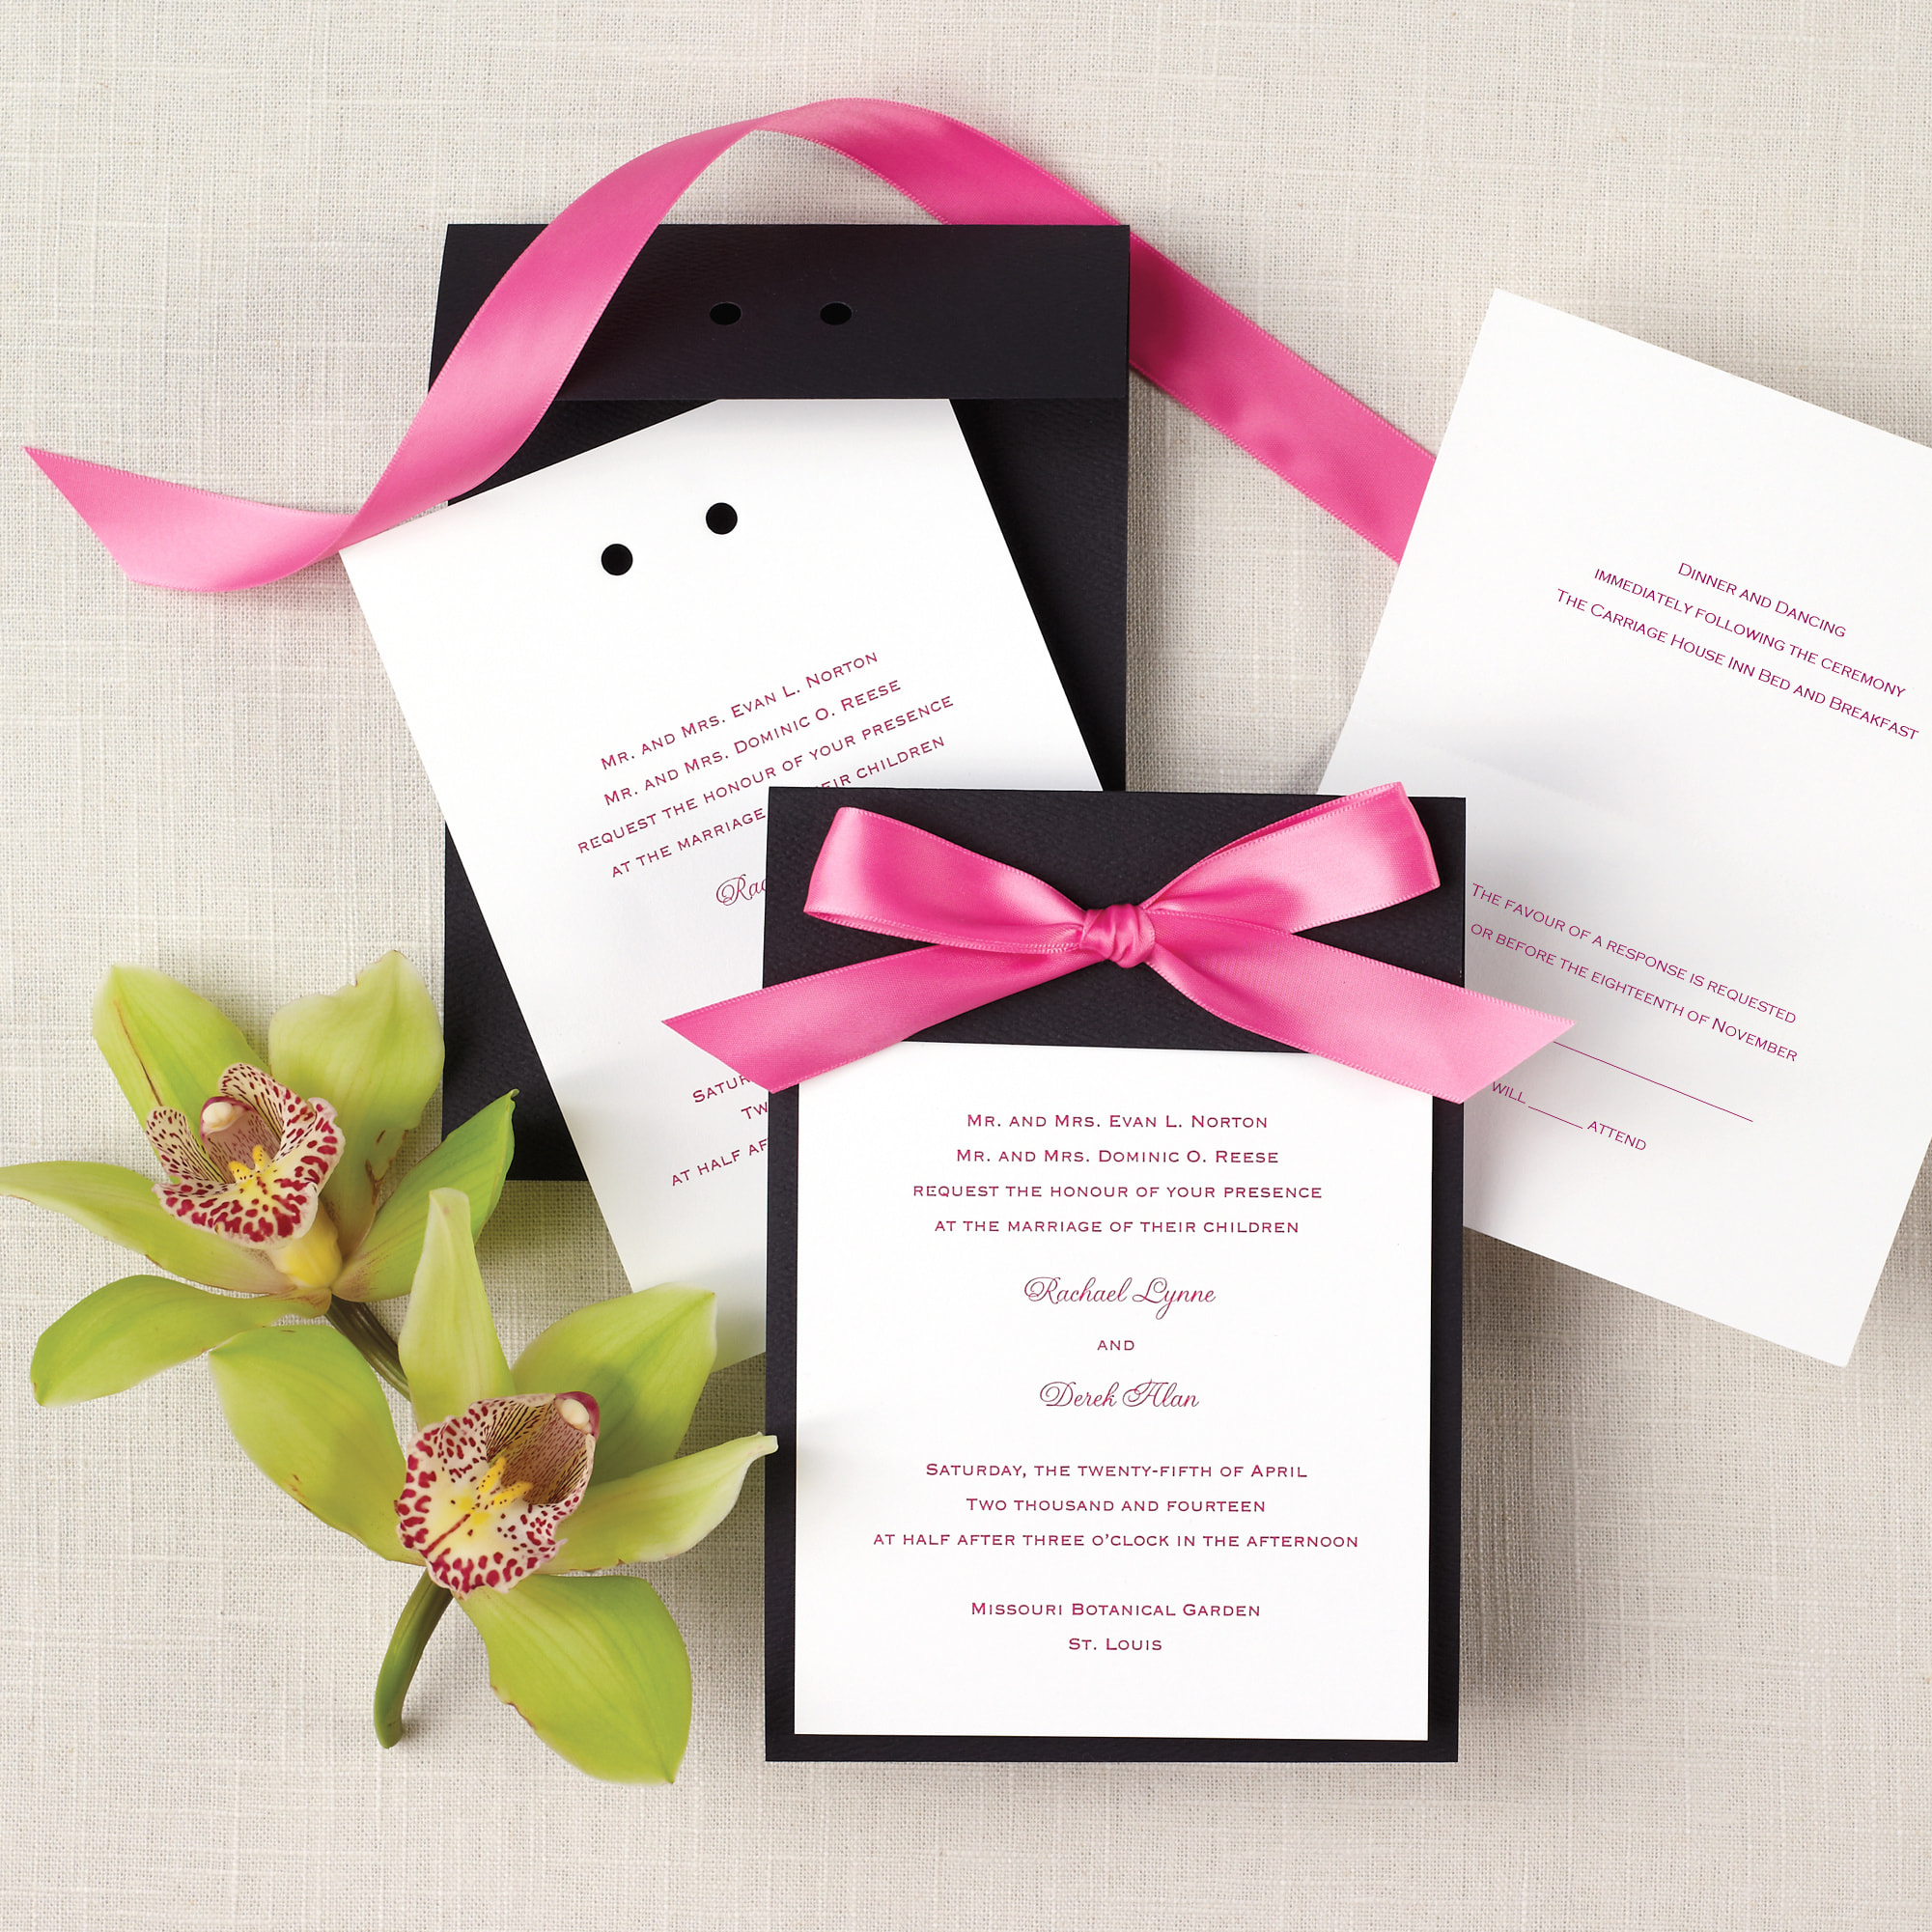 color duet wedding invitation - all in one wedding invitations, Wedding invitations